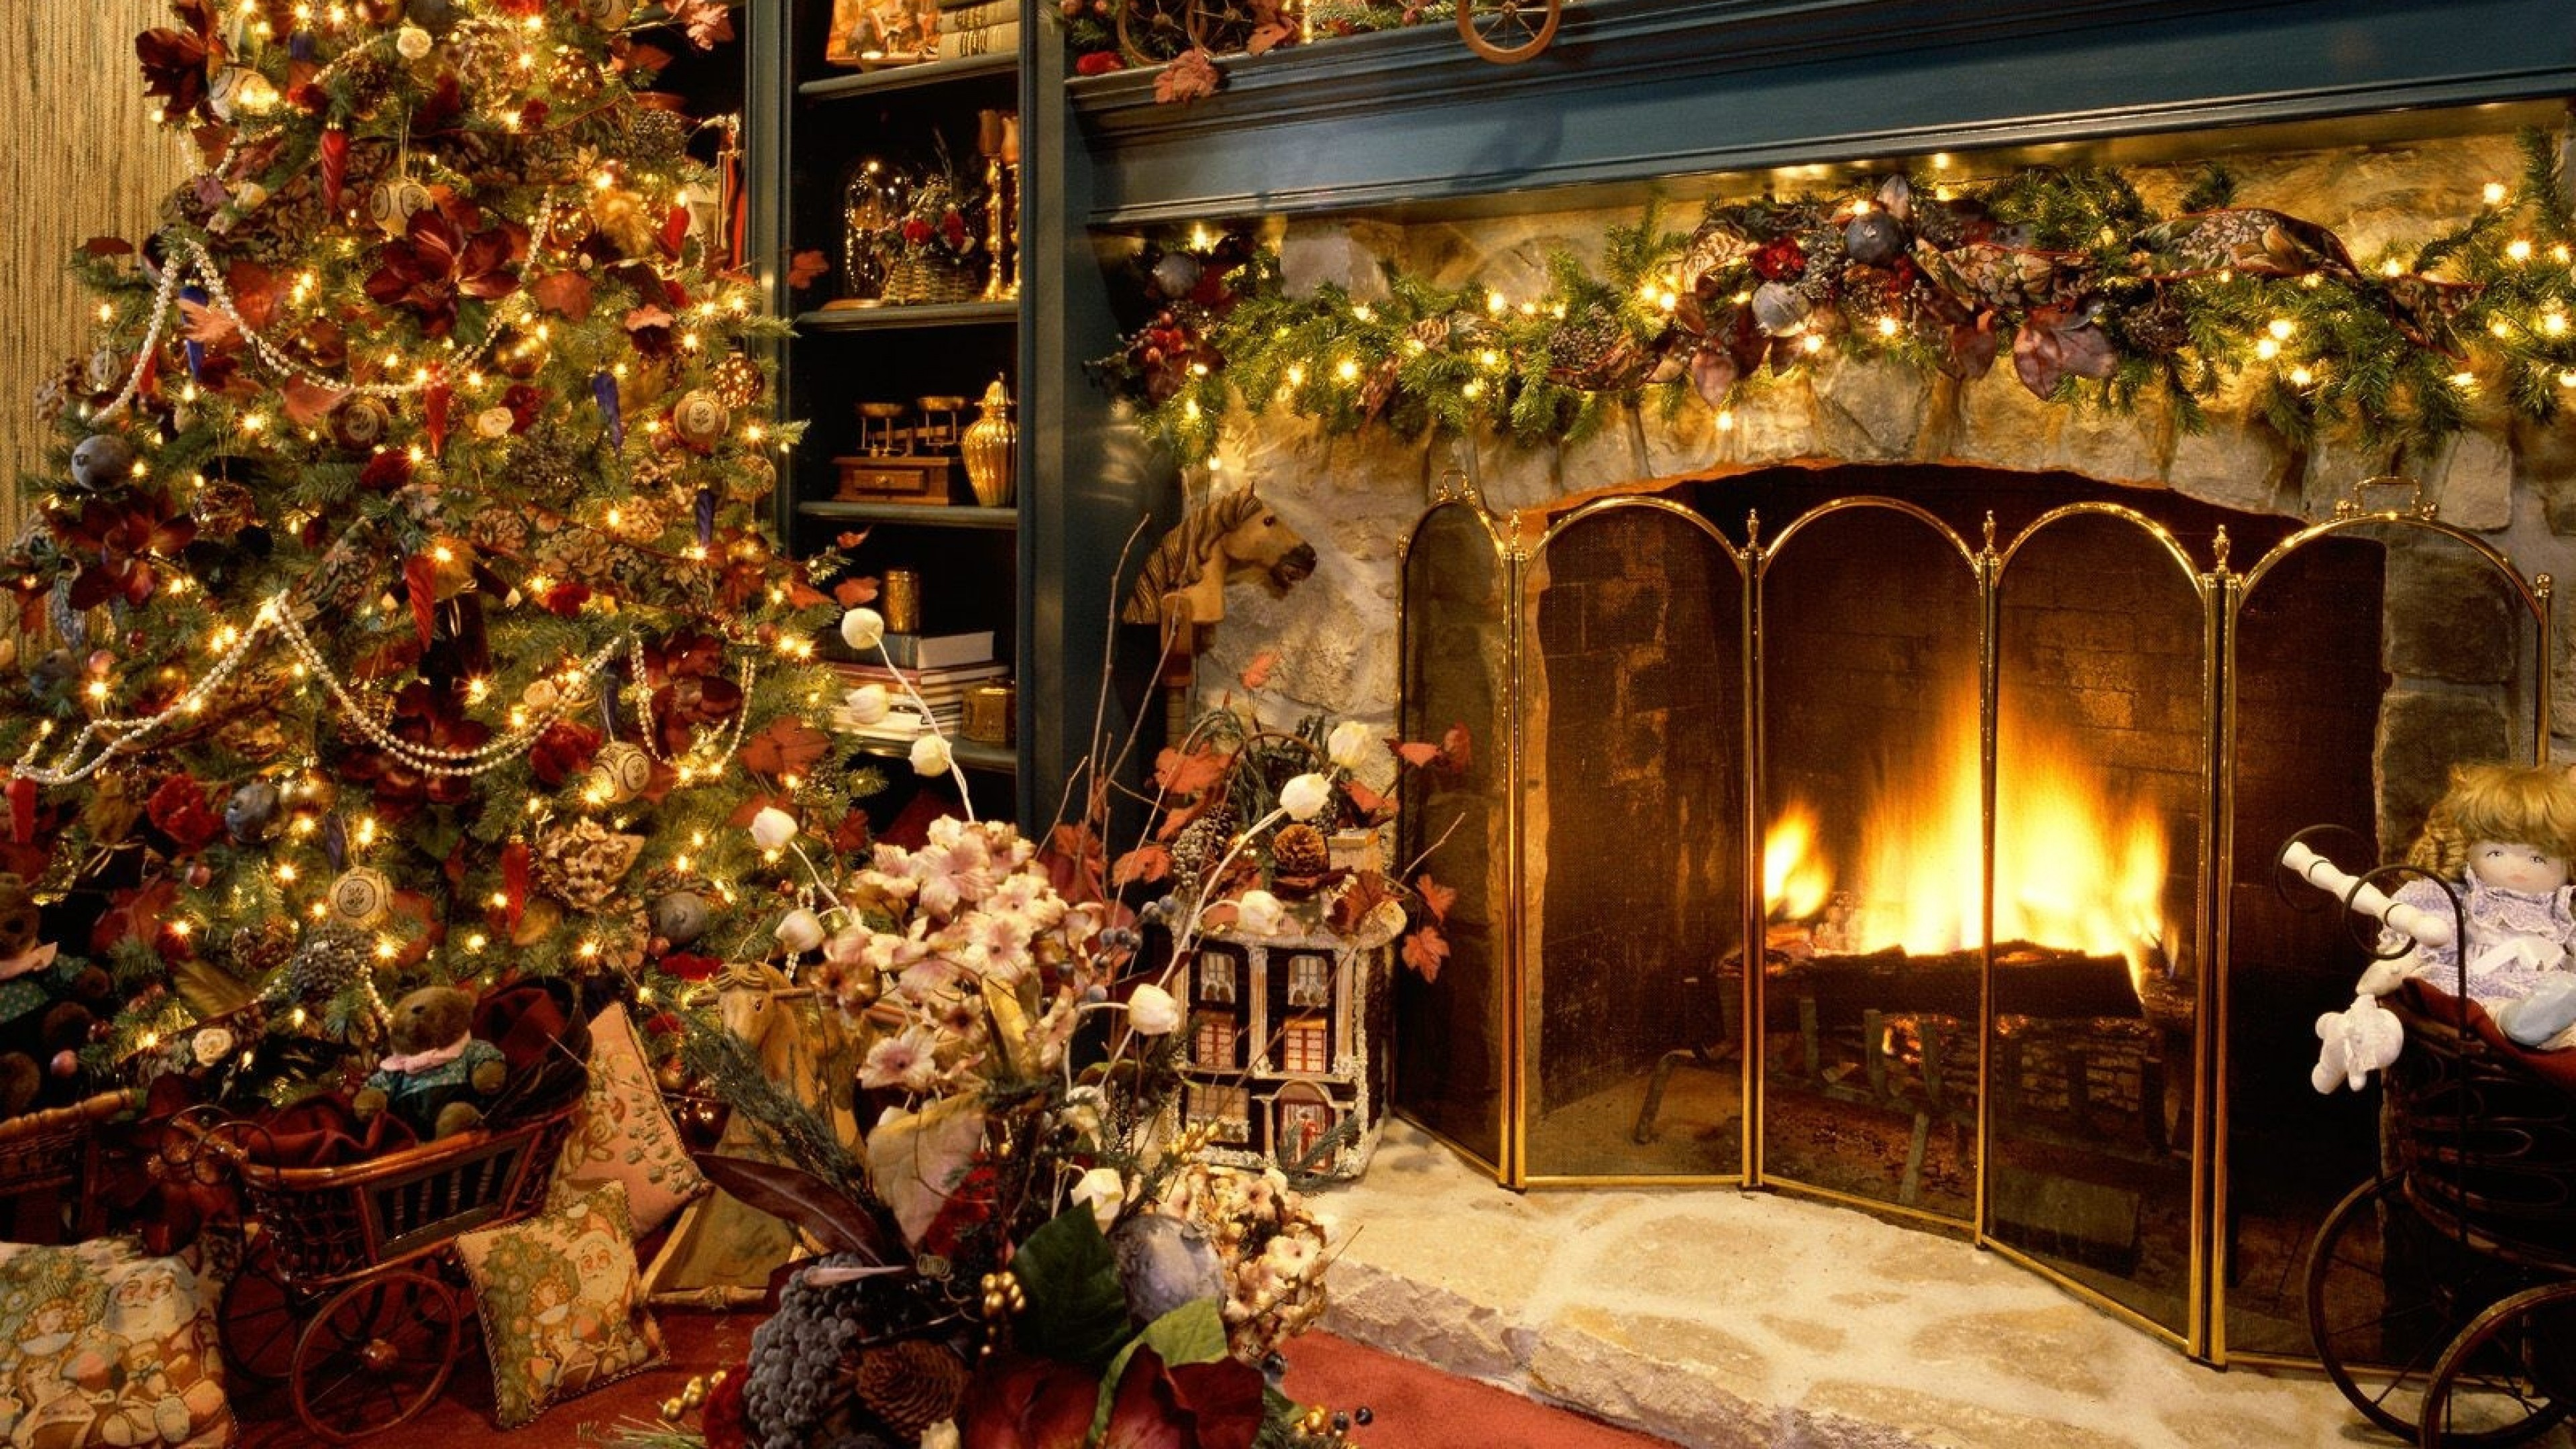 Res: 3840x2160, Christmas Fireplace Wallpaper Wallpapers9